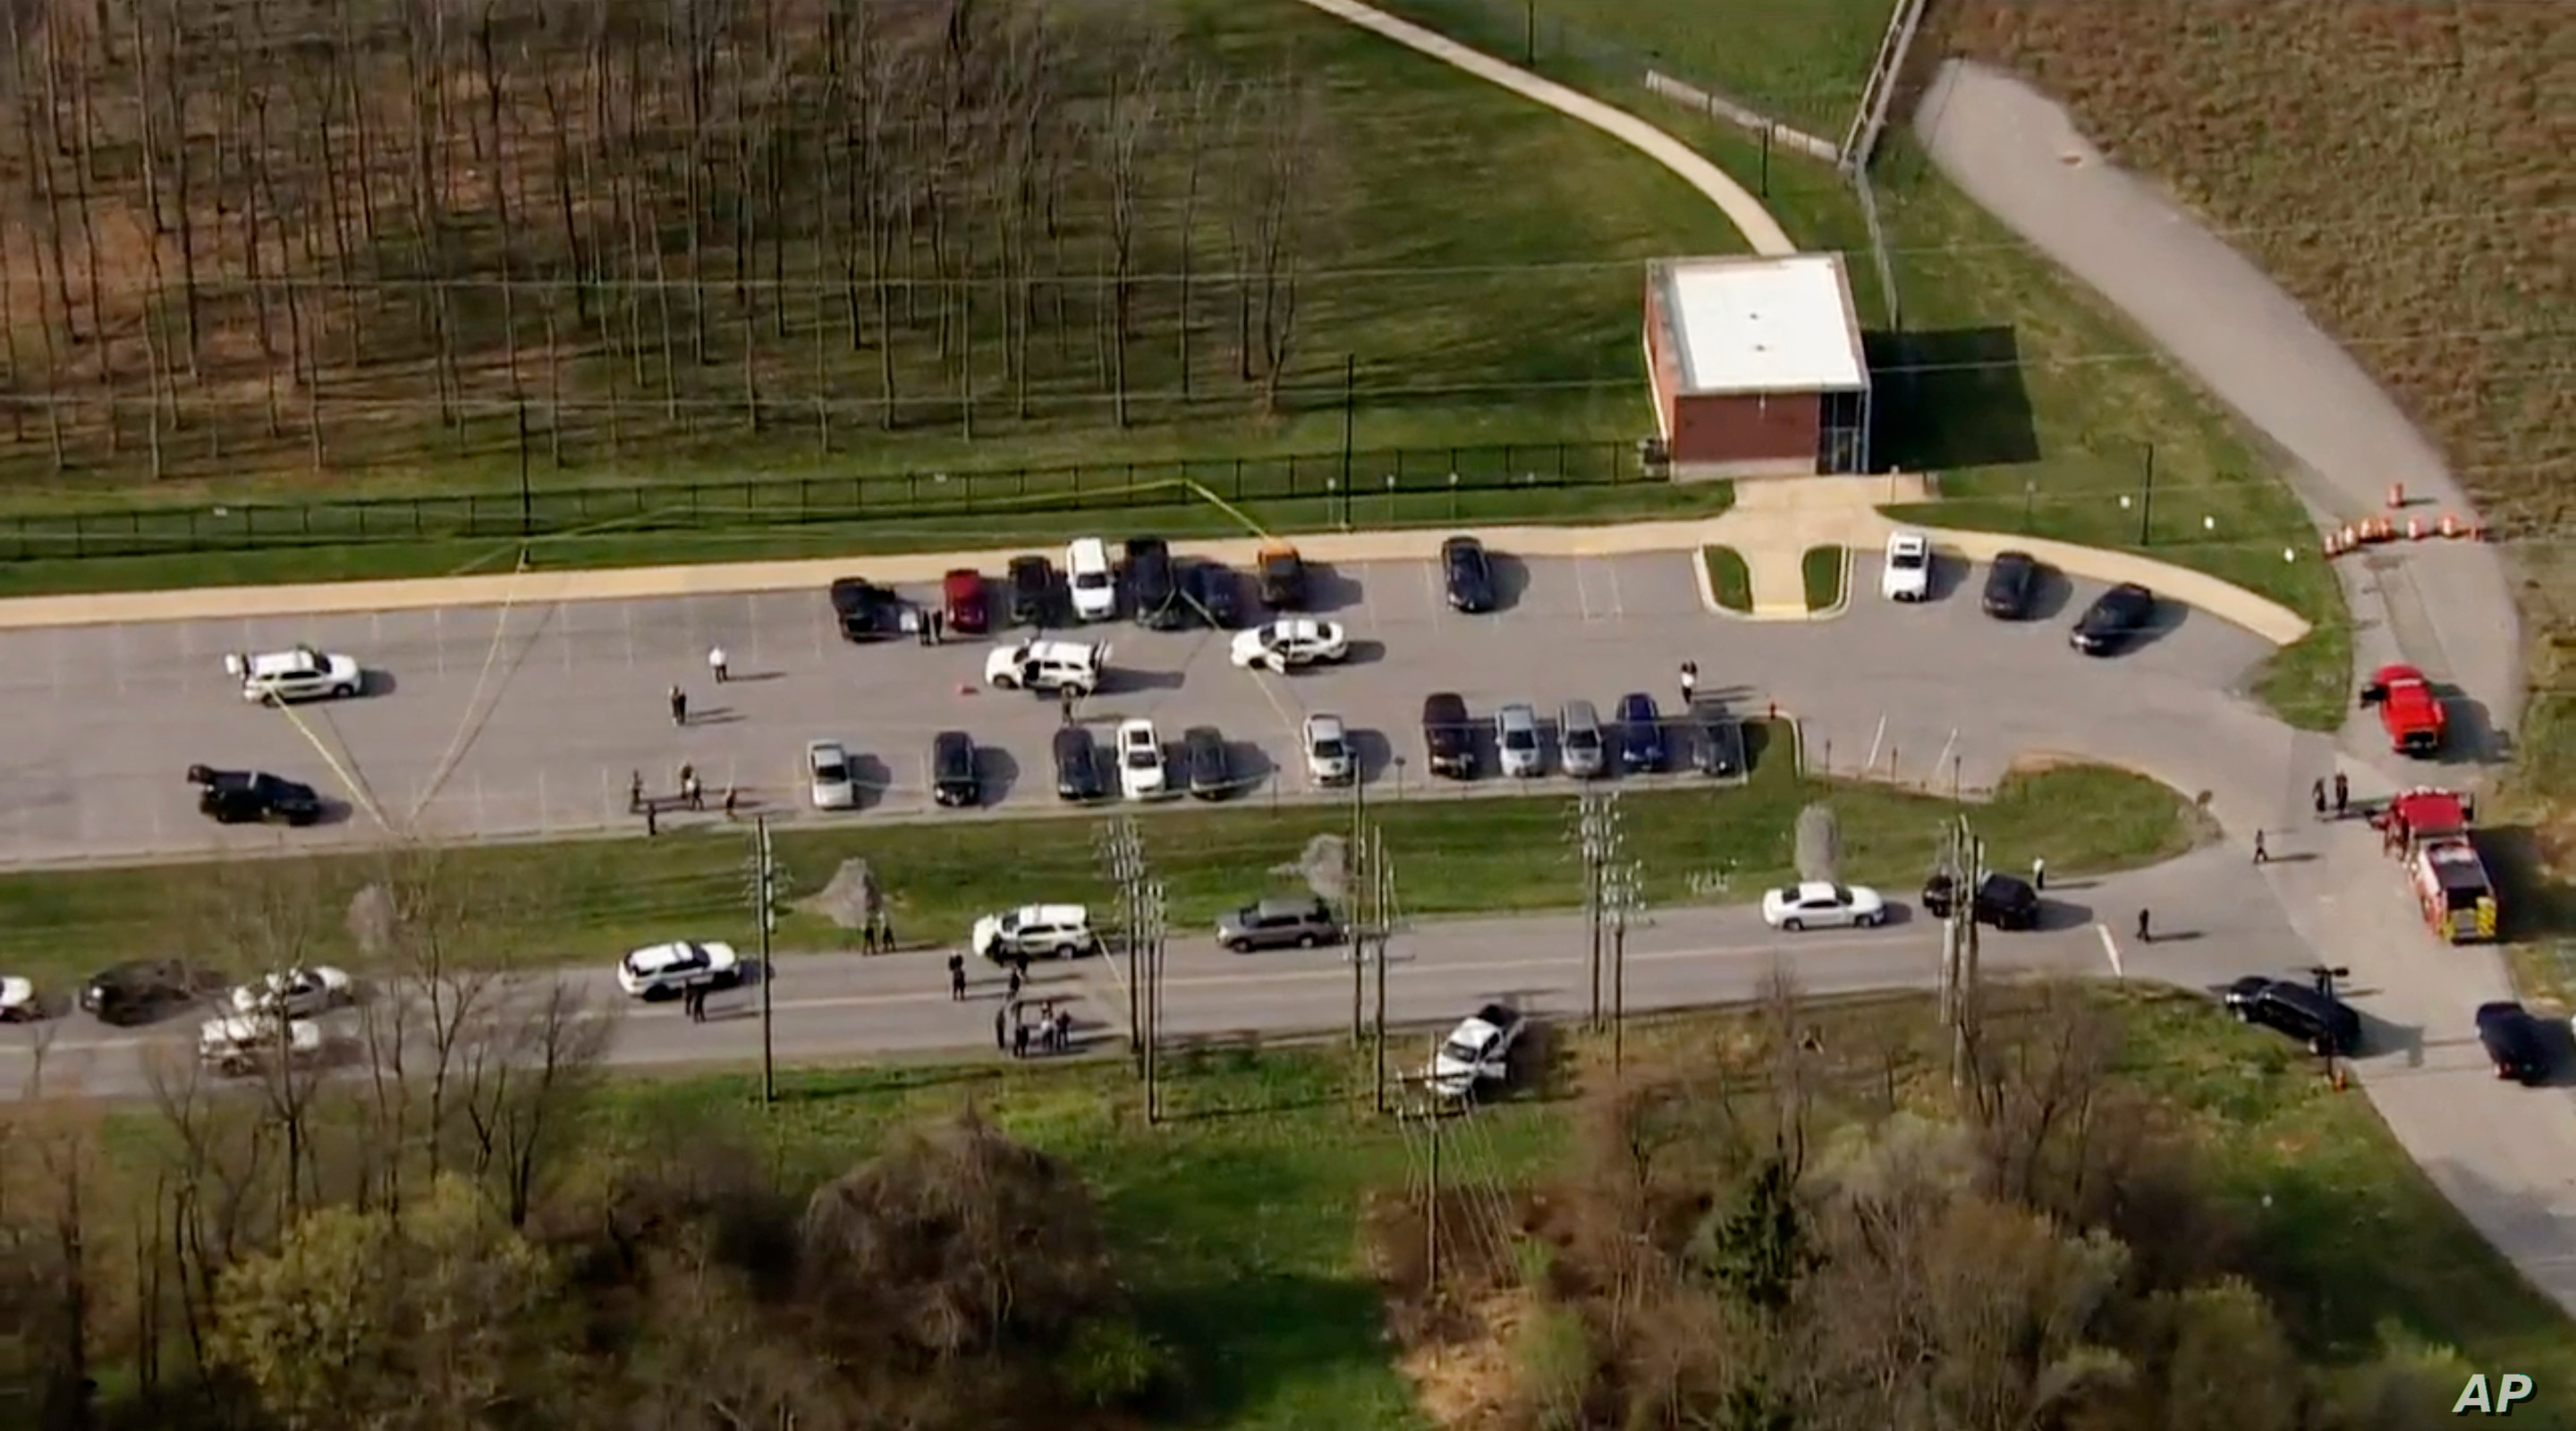 Maryland active shooter investigation: At least 2 injured, 'suspect down,' police say